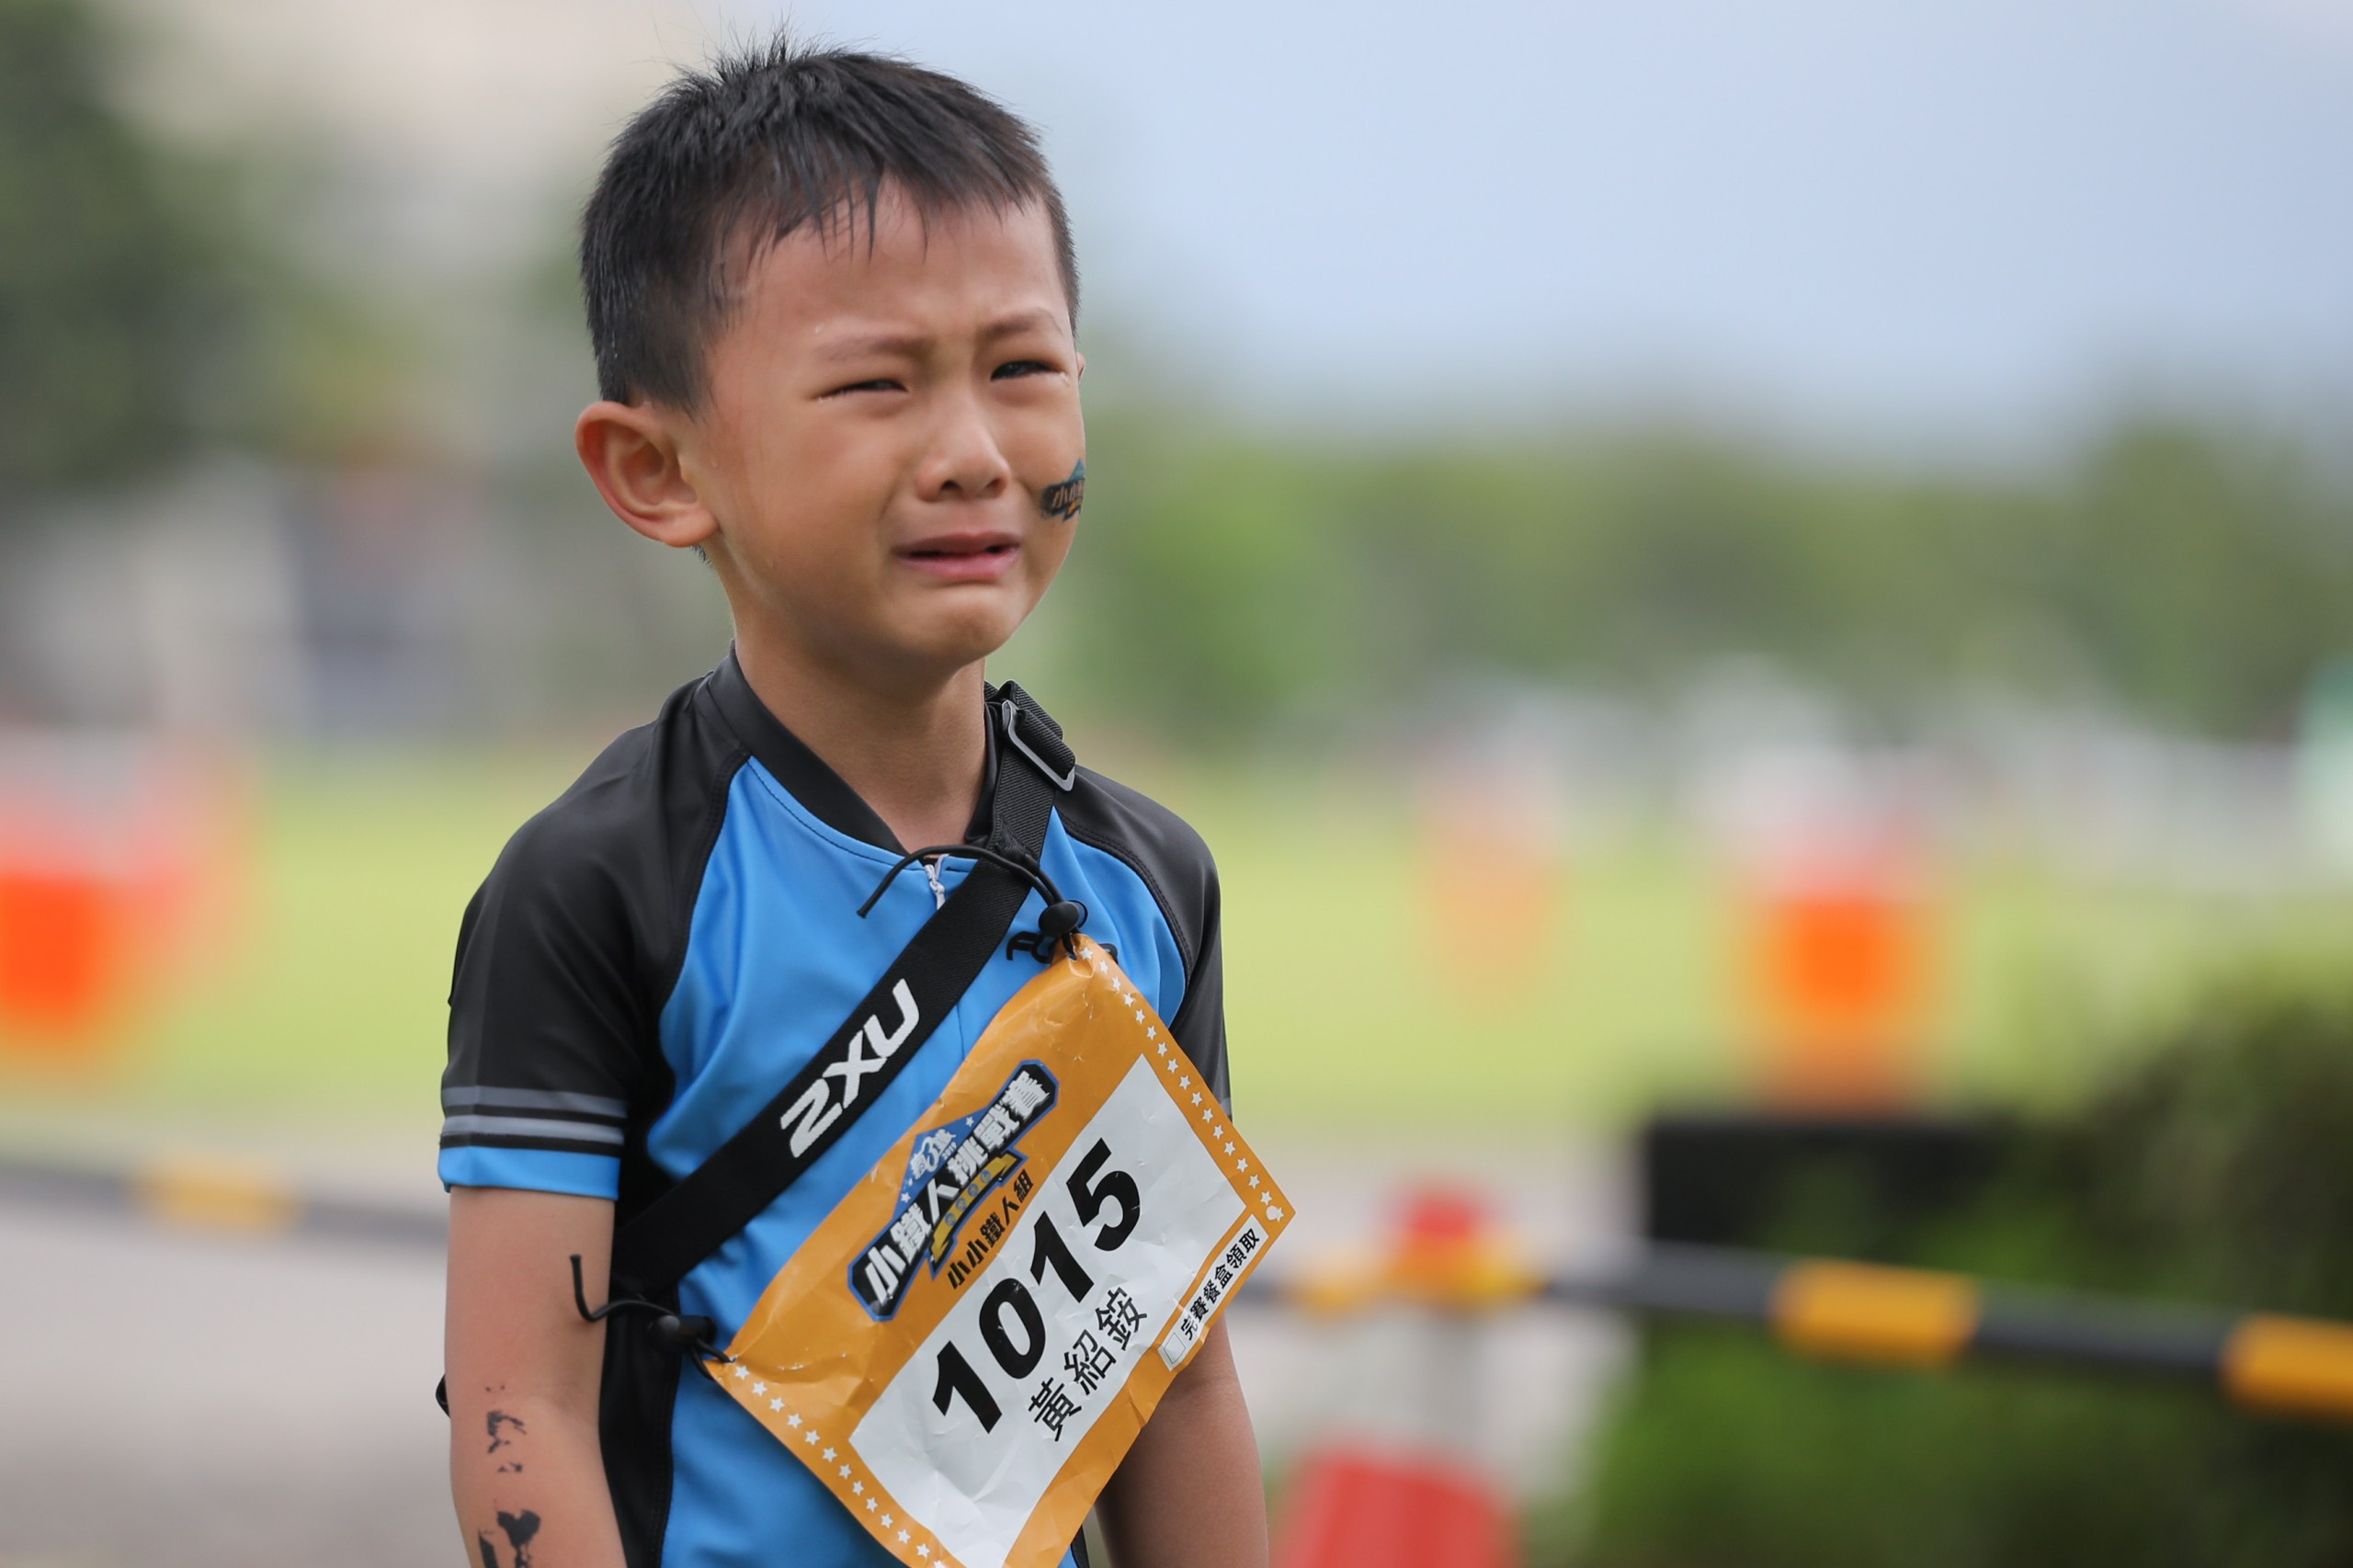 德築-DEZU-project-Fun3sport-children-triathlon-challenge-8